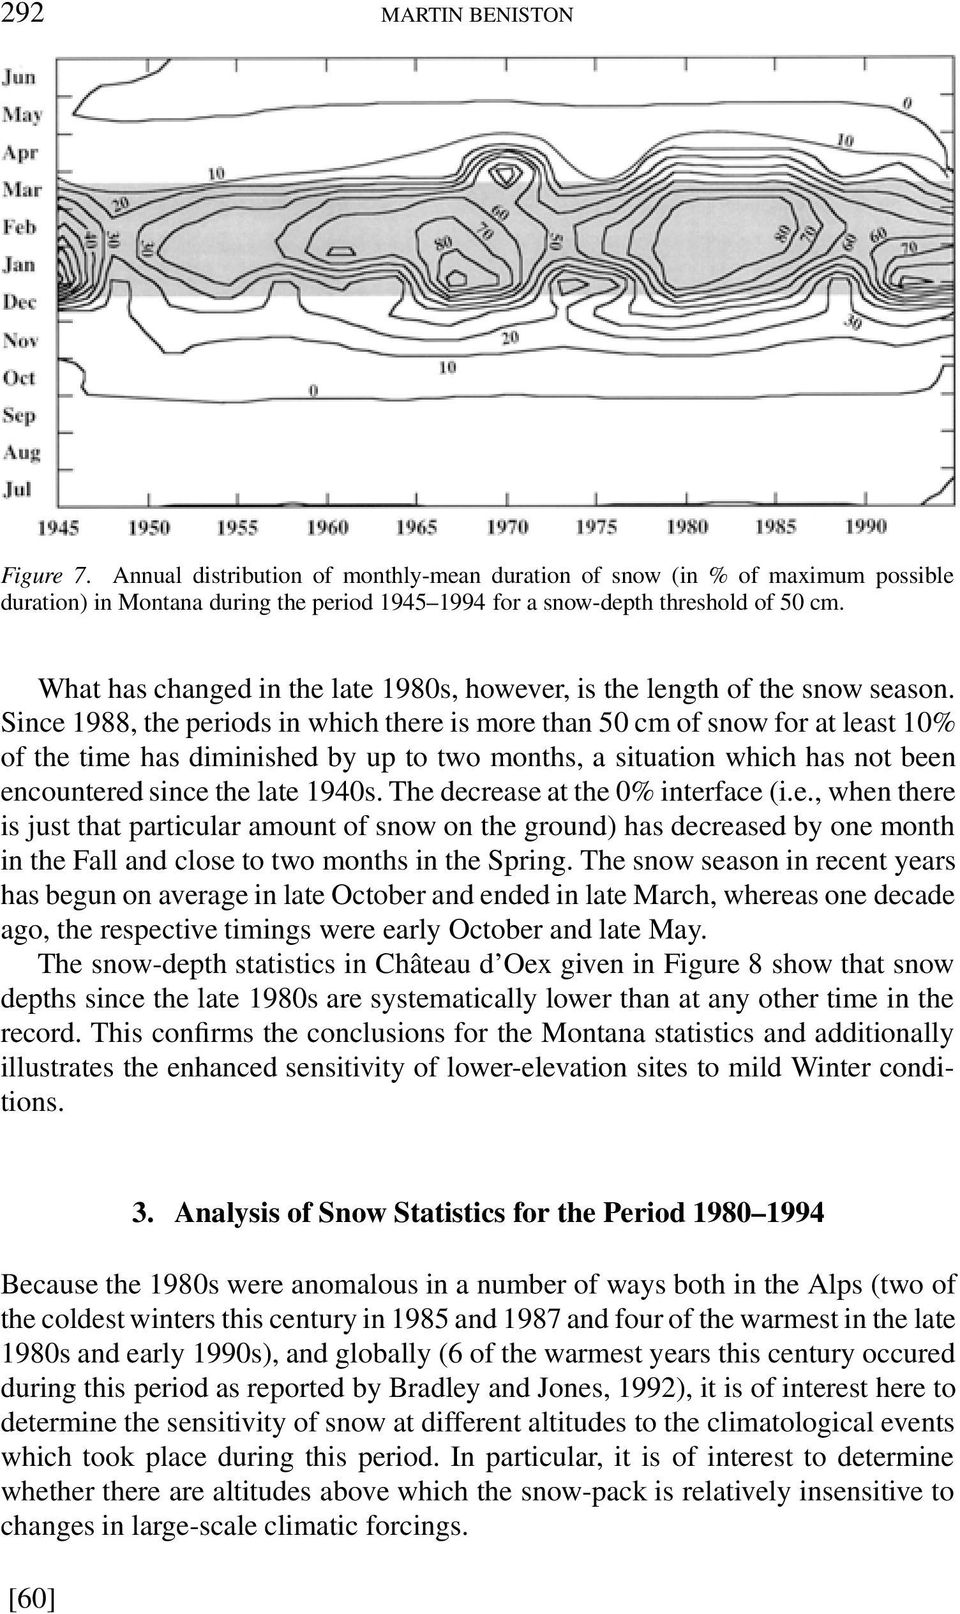 Since 1988, the periods in which there is more than 50 cm of snow for at least 10% of the time has diminished by up to two months, a situation which has not been encountered since the late 1940s.